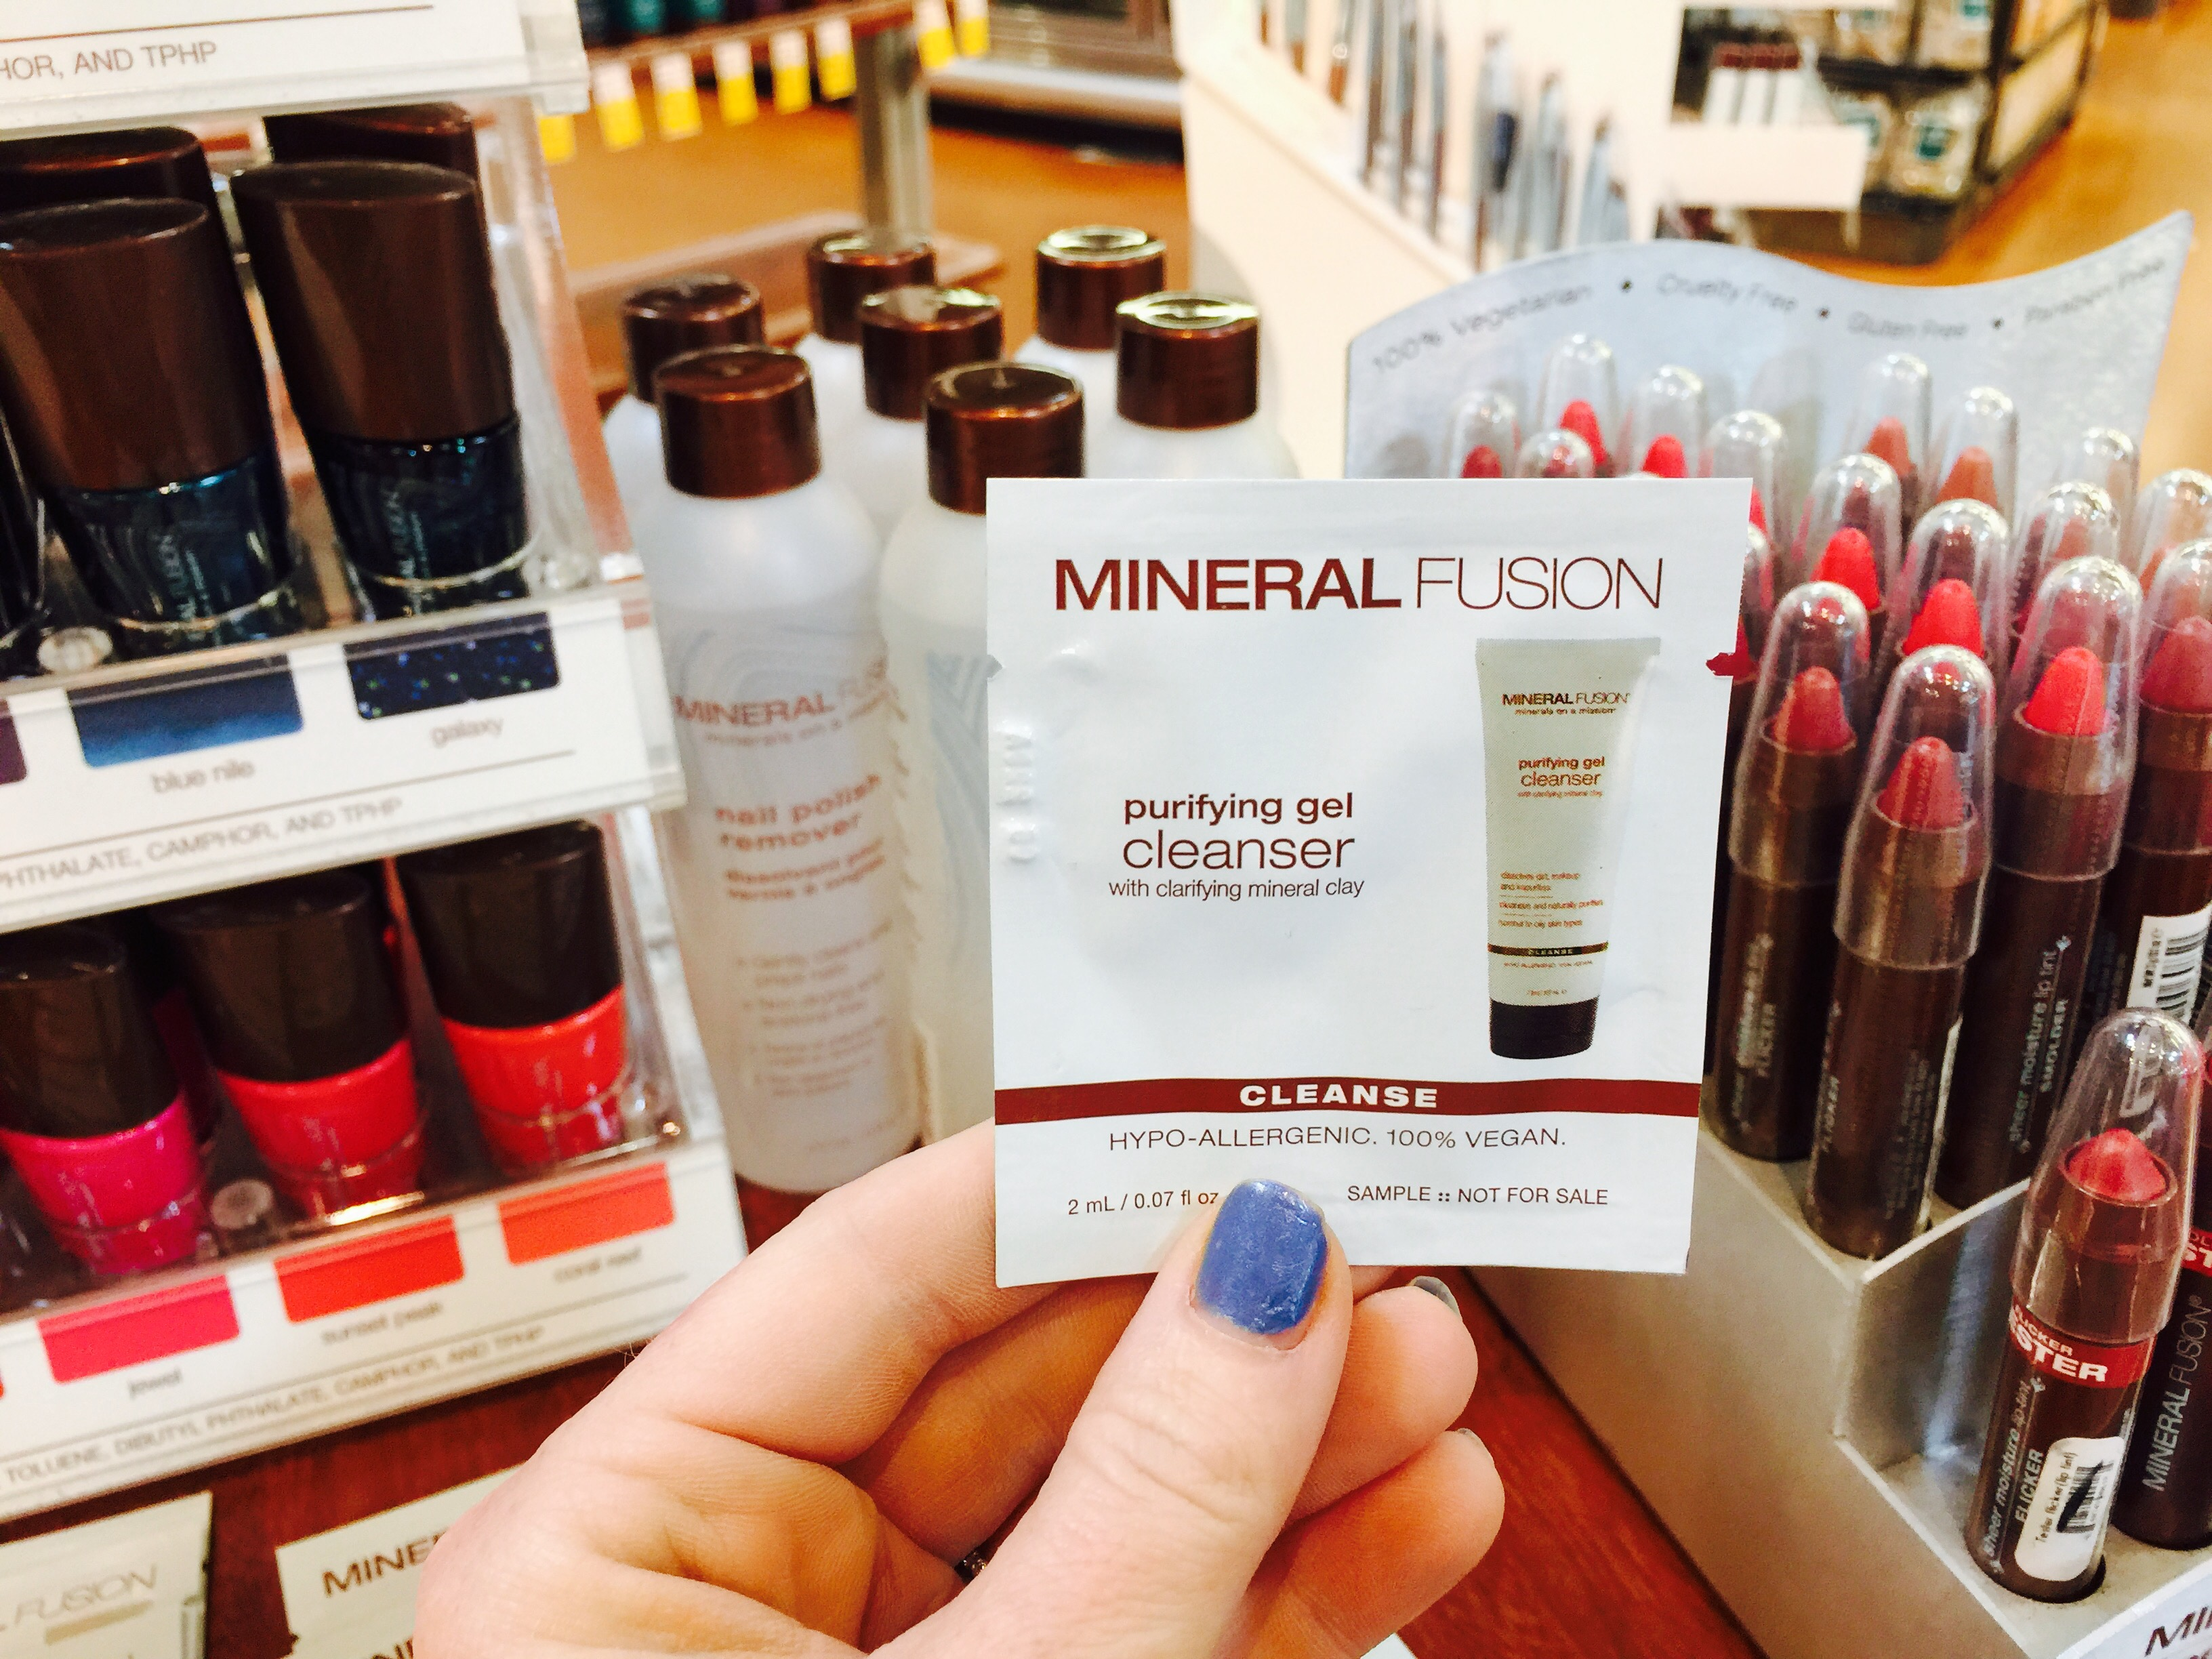 17 practical ways to save at whole foods market – free beauty sample from Mineral Fusion